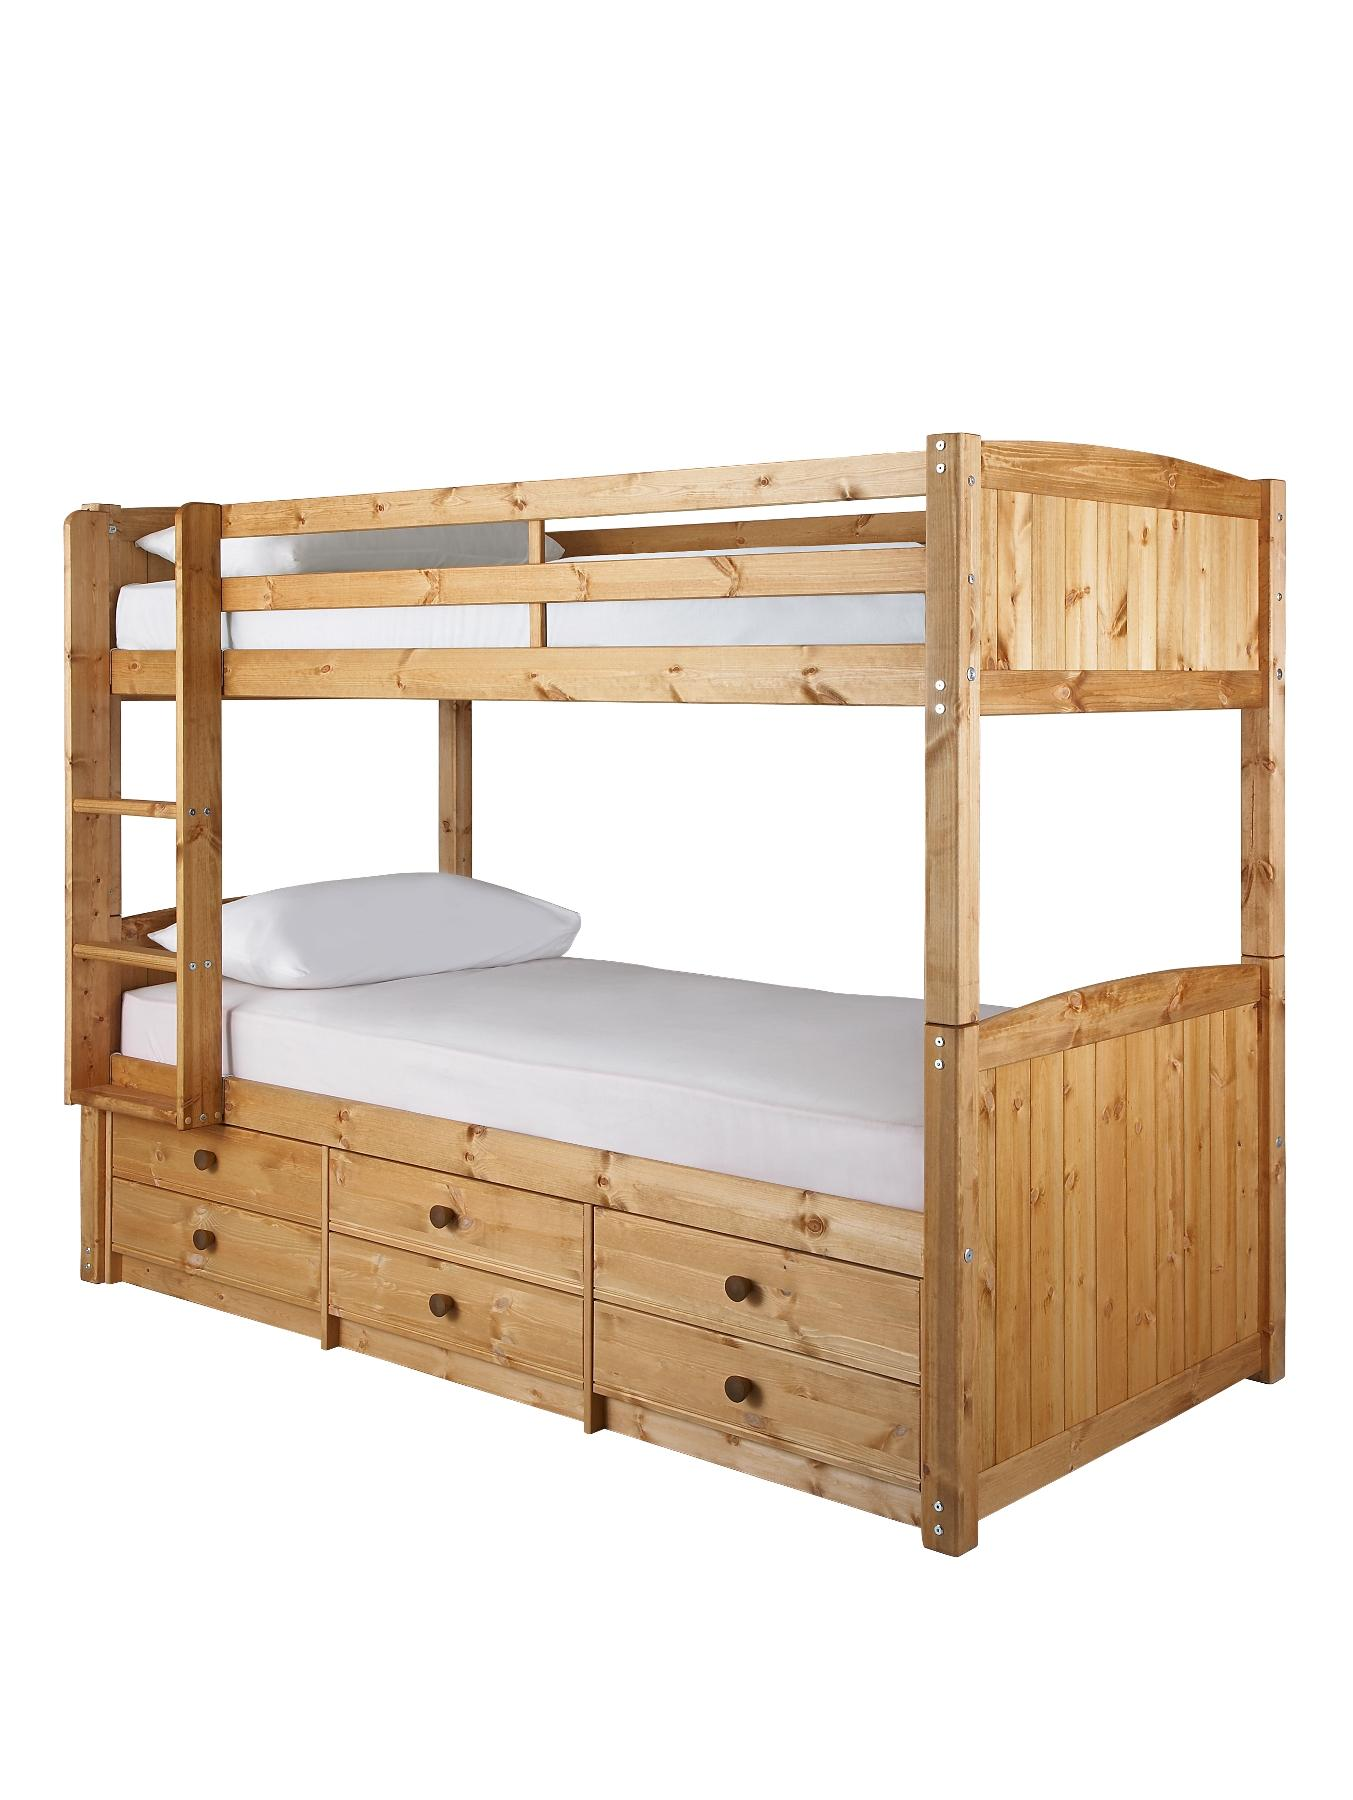 Pine bunk bed price comparison results for Bunk bed frame